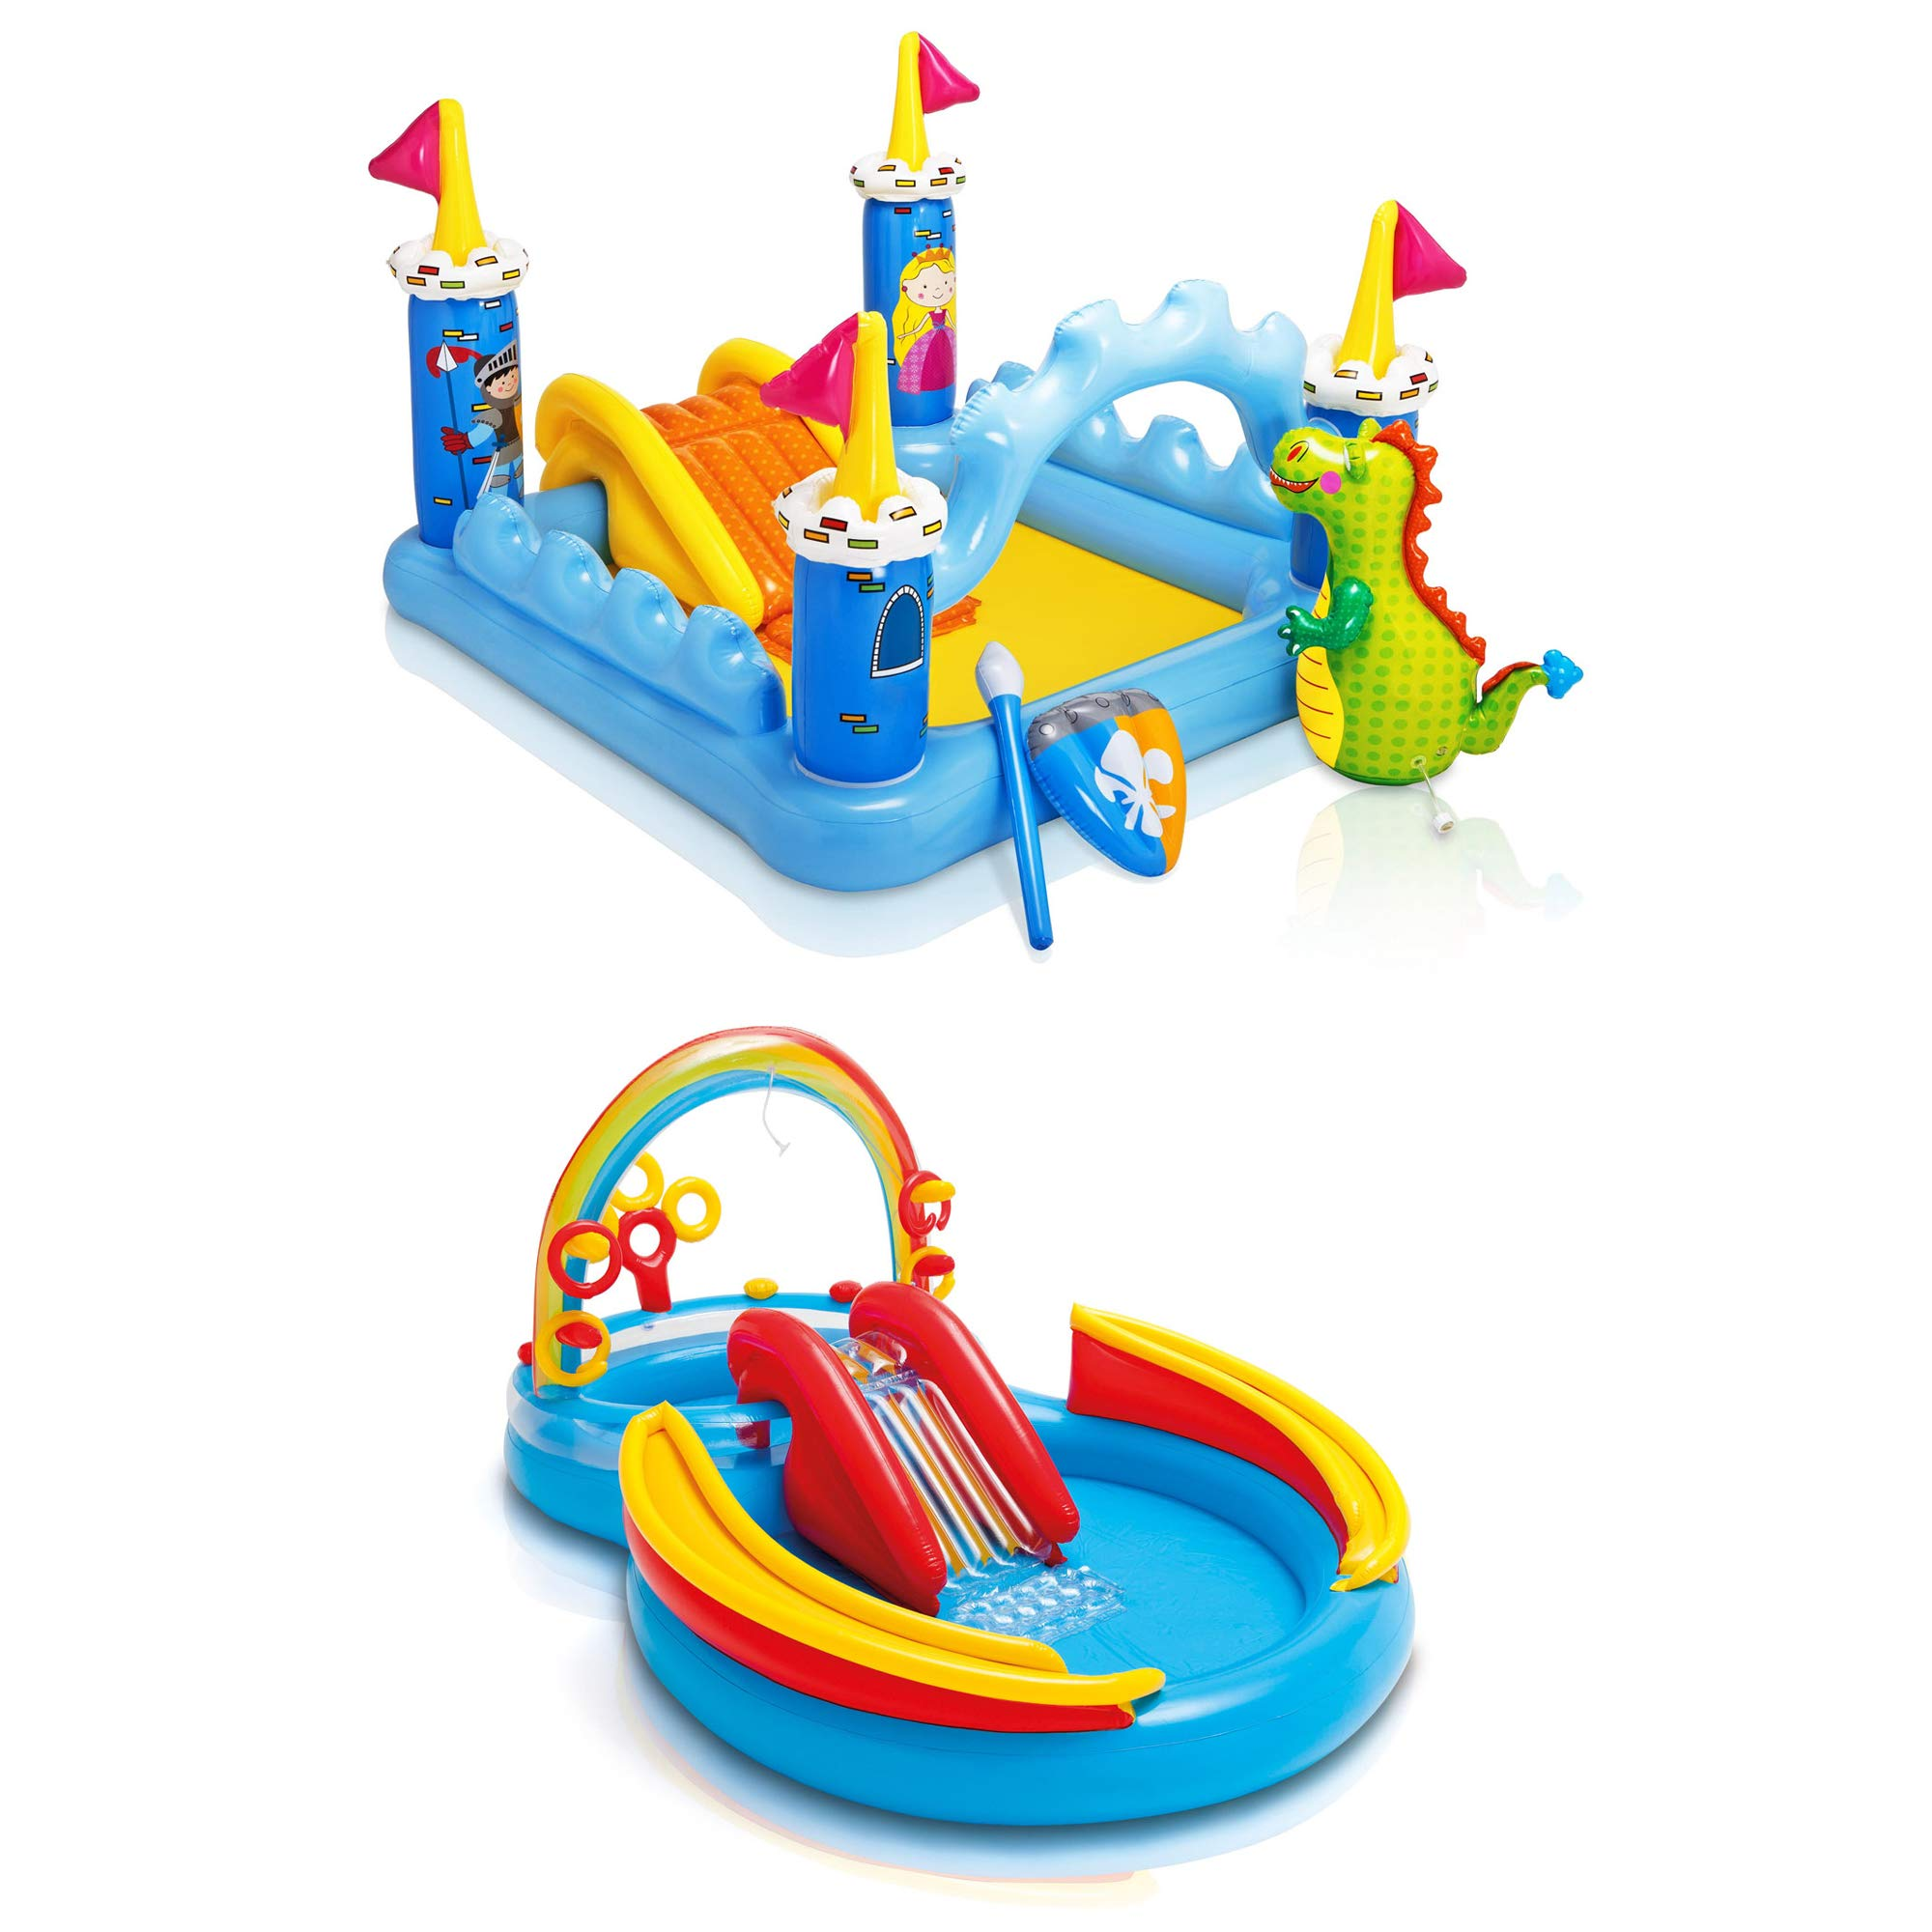 Intex Inflatable Fantasy Castle & Rainbow Ring Water Play Swimming Pool Center by Intex (Image #1)